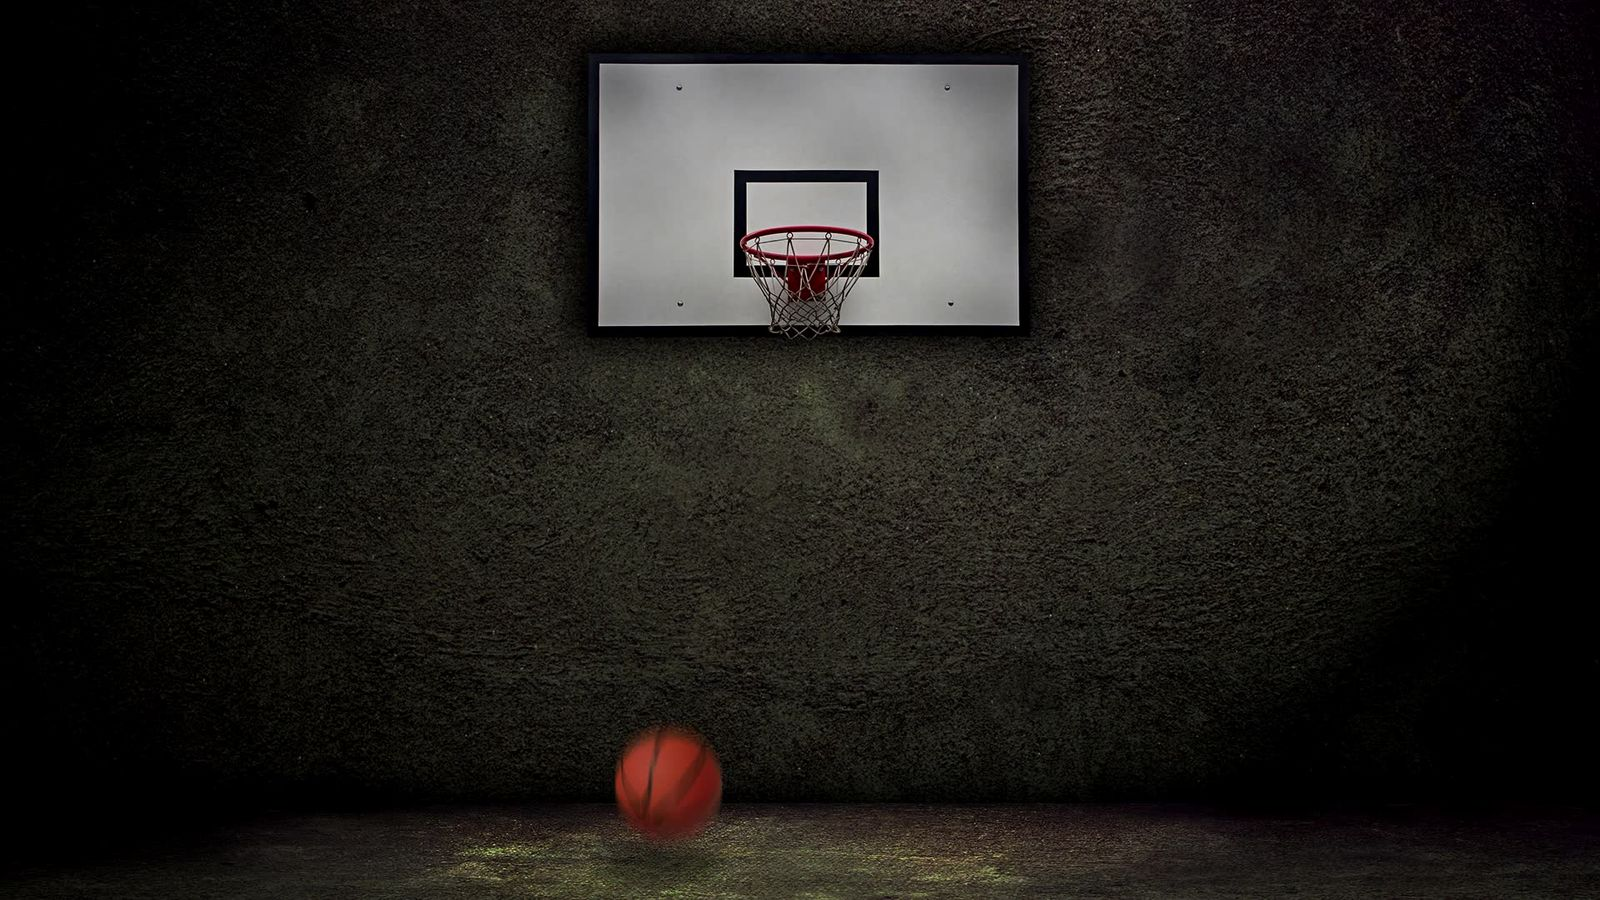 Basketball full hd Wallpaper